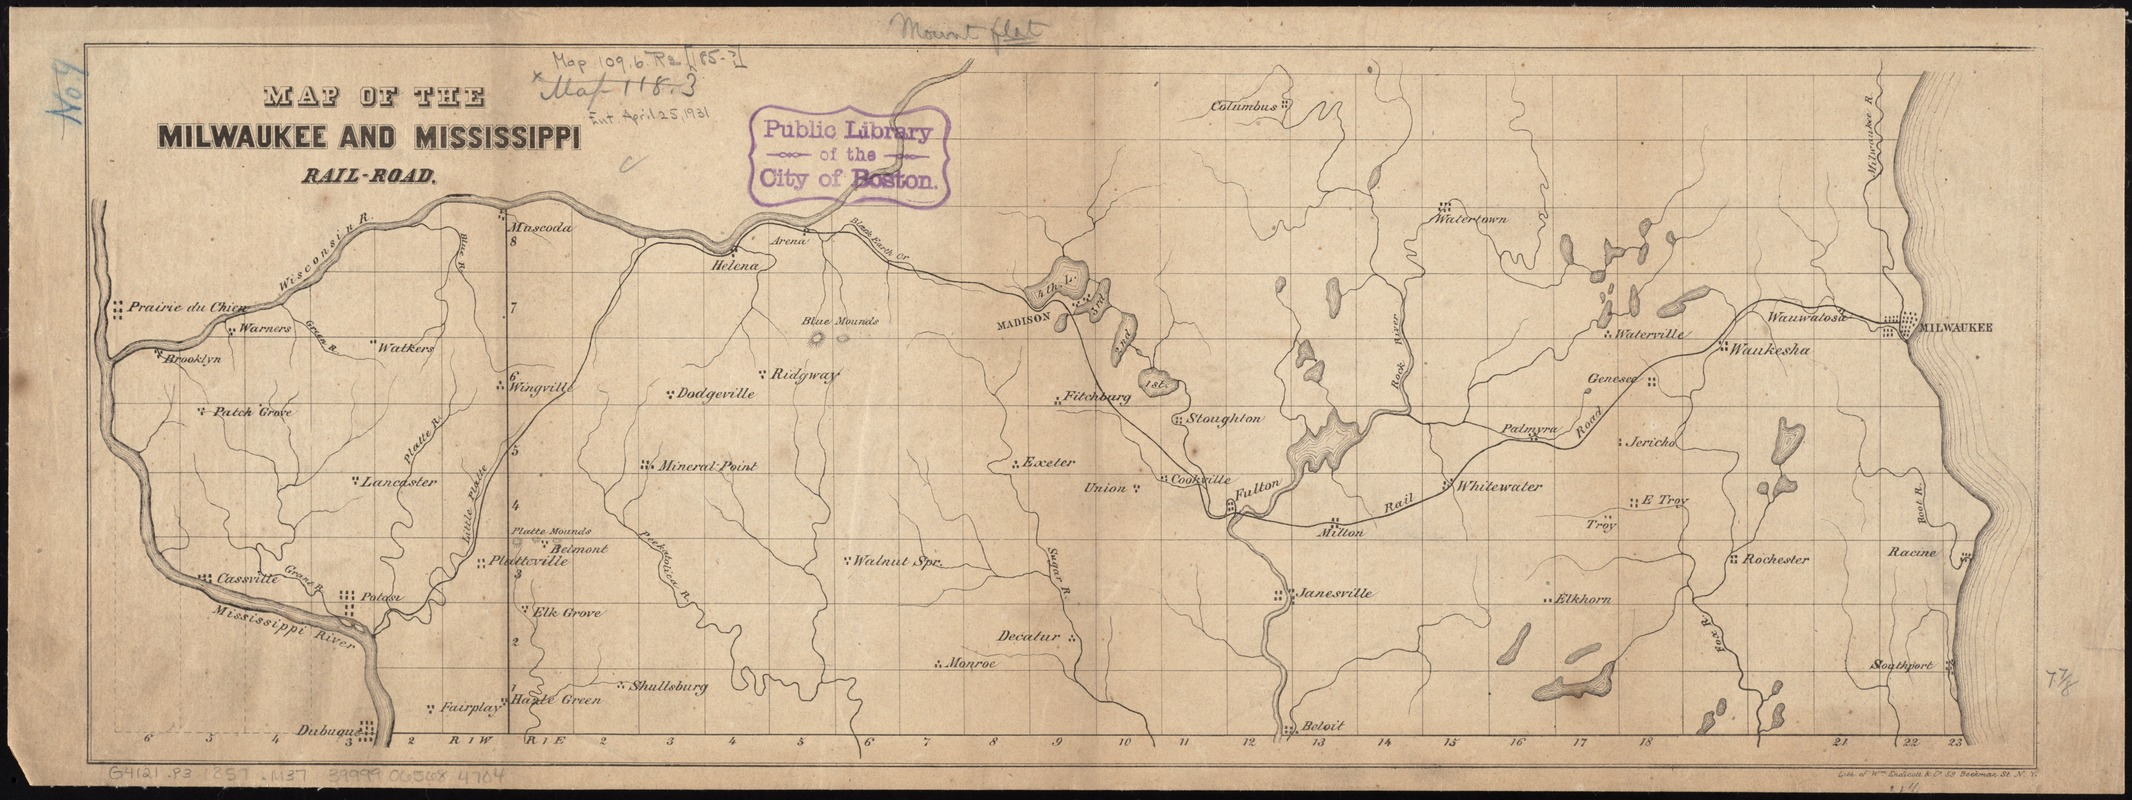 Map of the Milwaukee and Mississippi Rail-Road